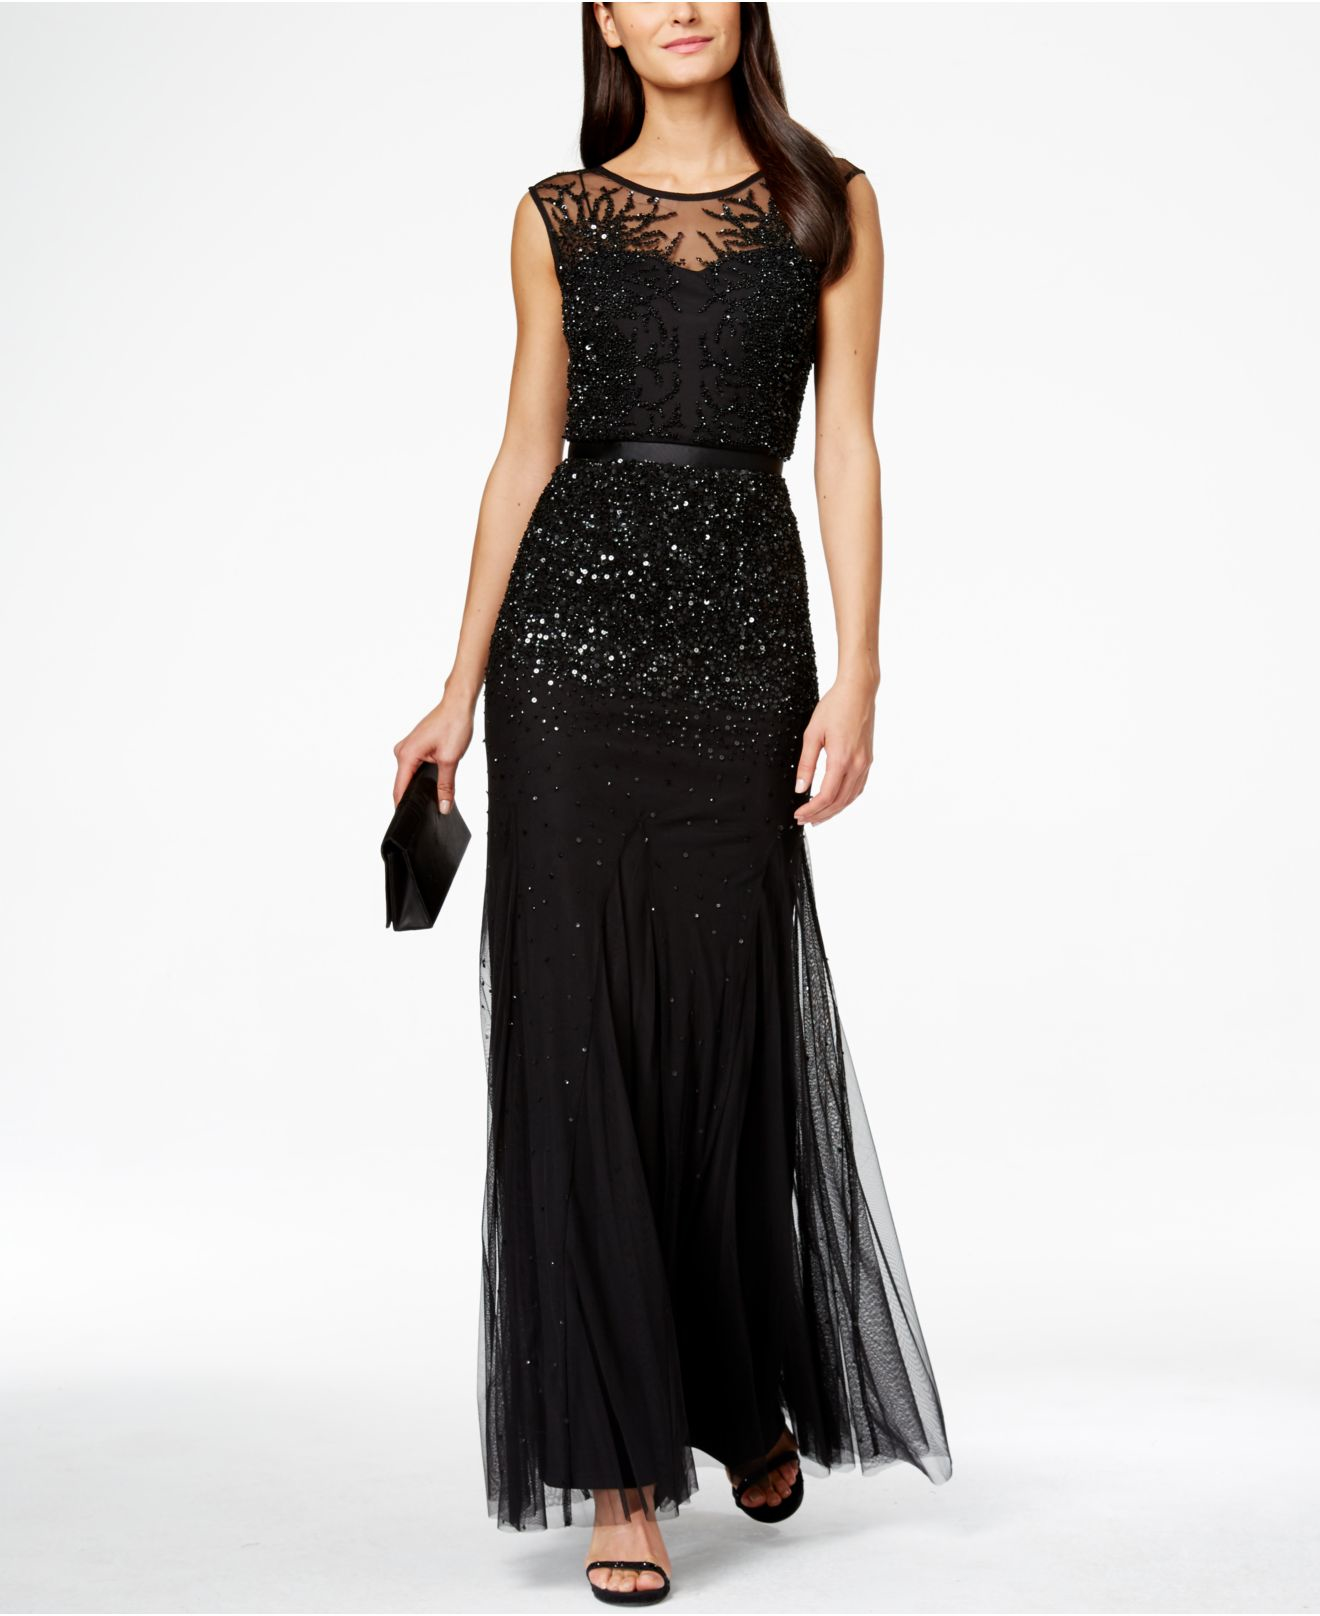 Lyst - Adrianna Papell Sleeveless Beaded Illusion Gown in Black